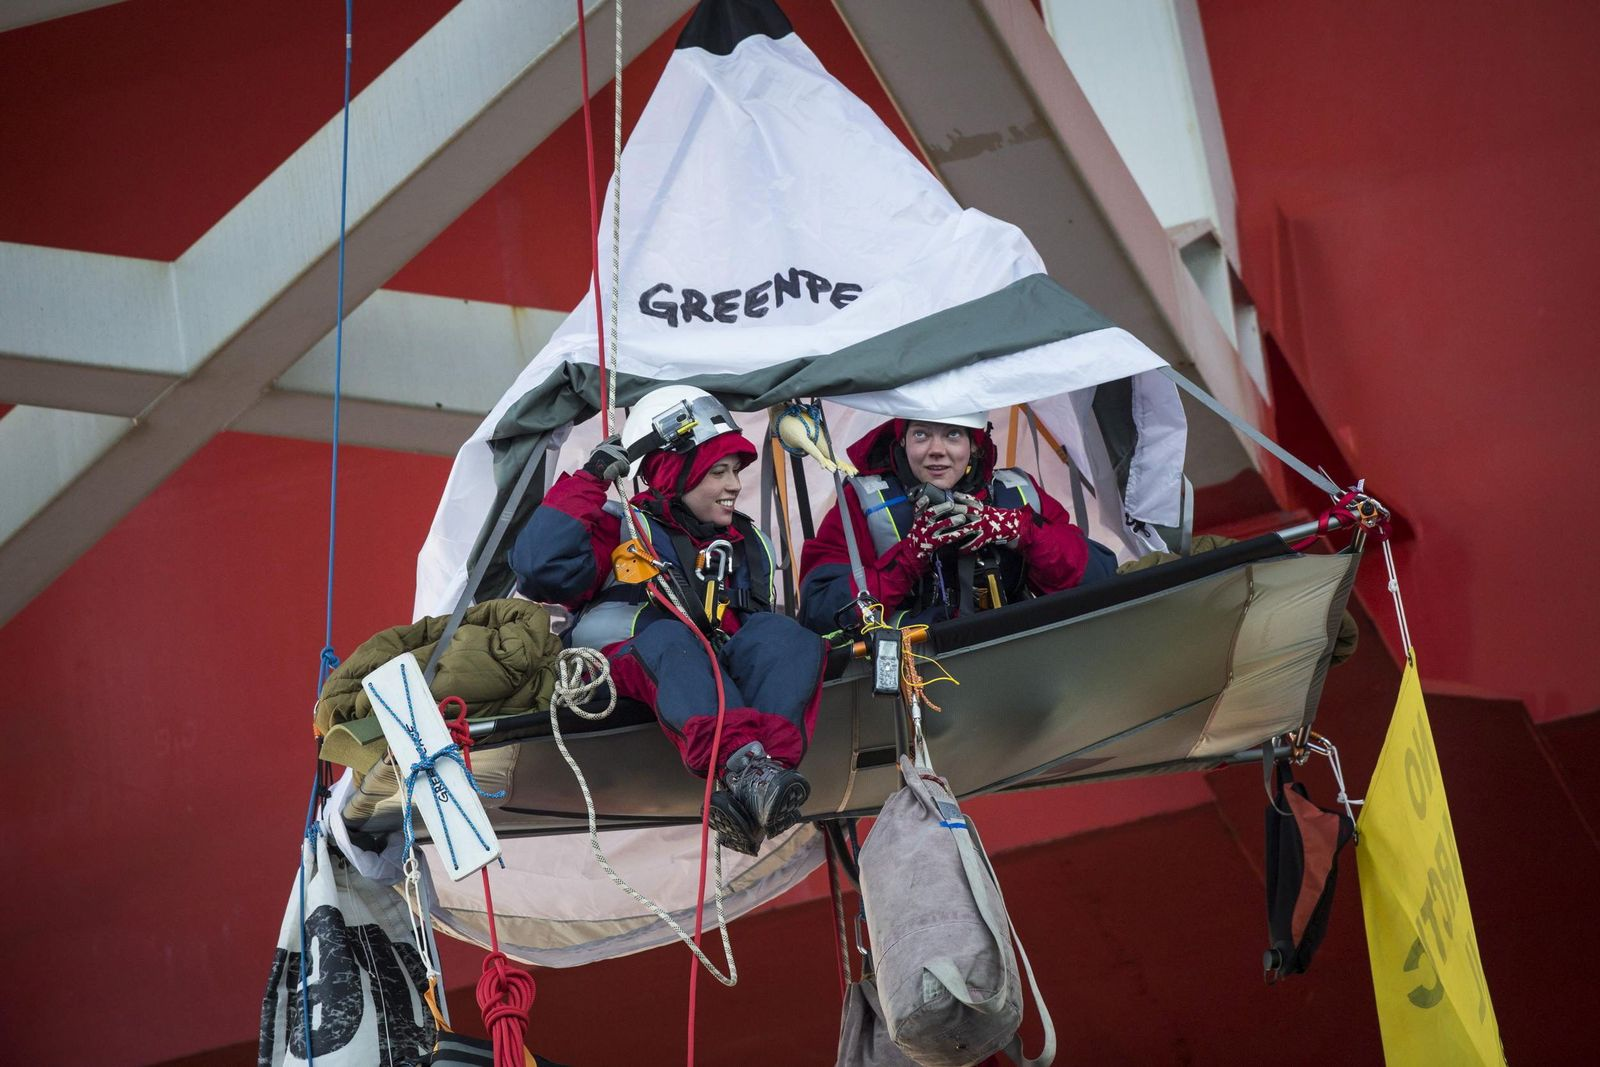 Greenpeace activists forced to end protest on Norwegian oil rig